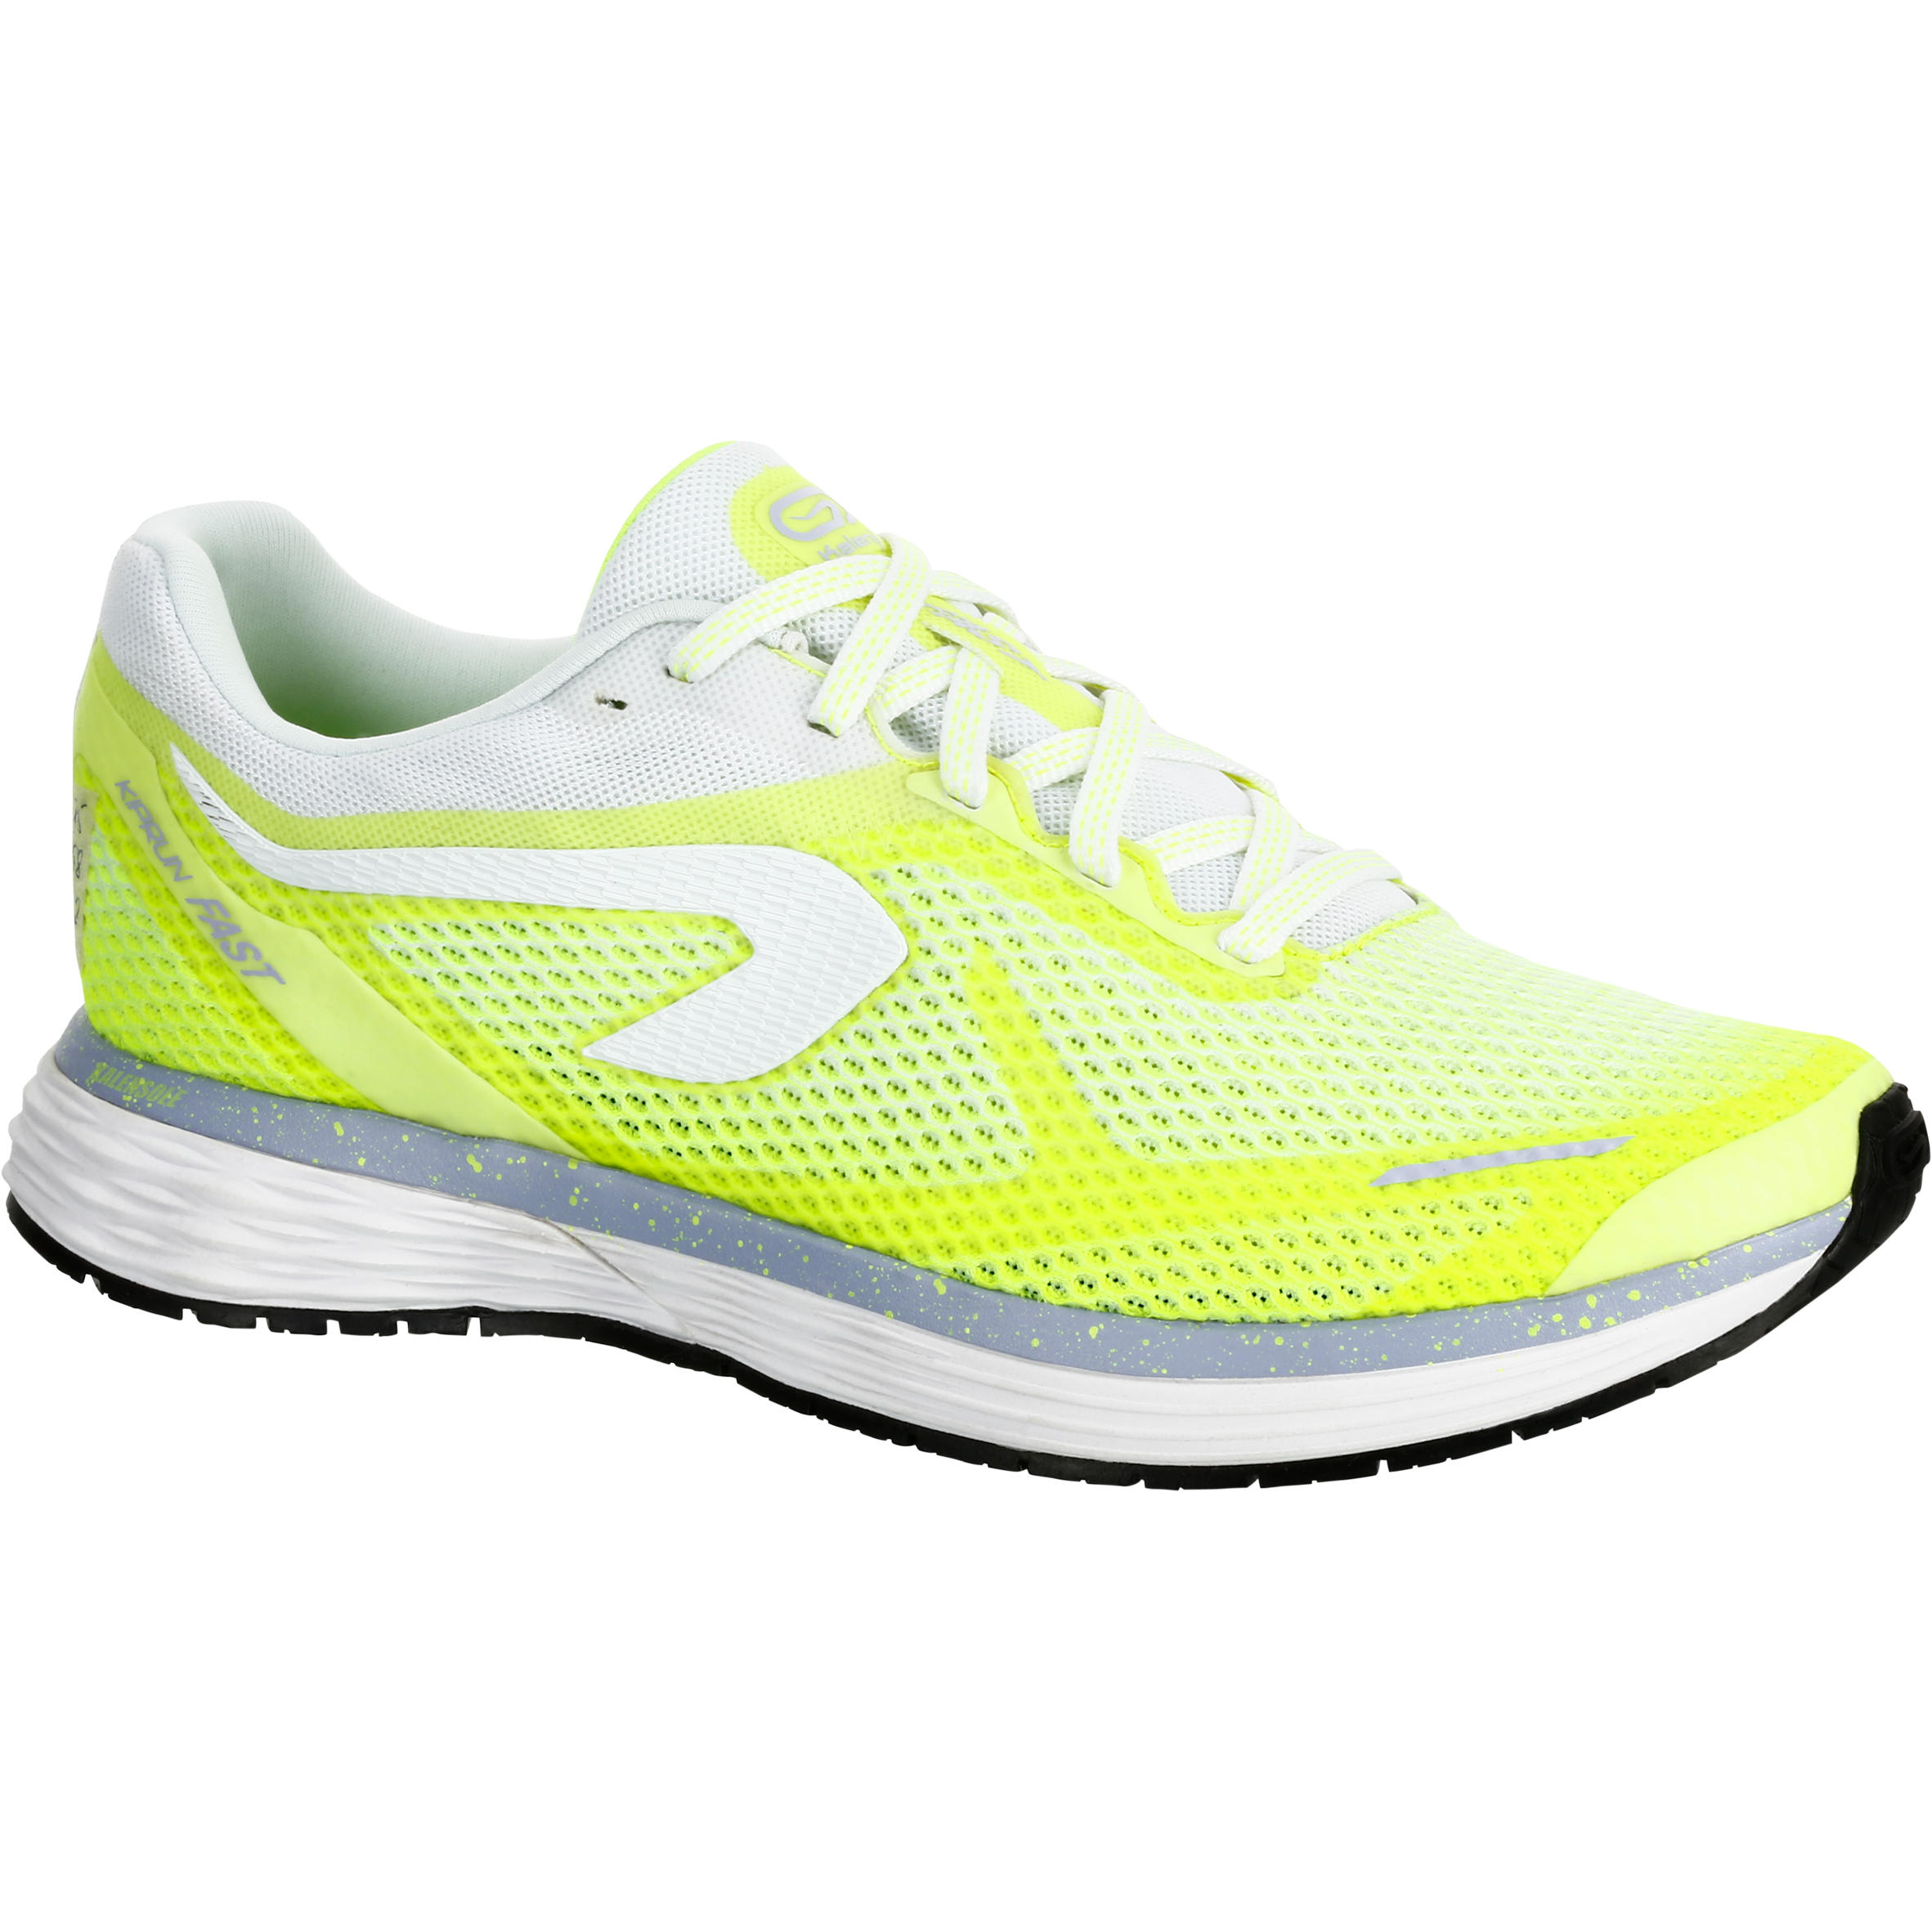 nike run monitor,chaussures running homme leger,collant